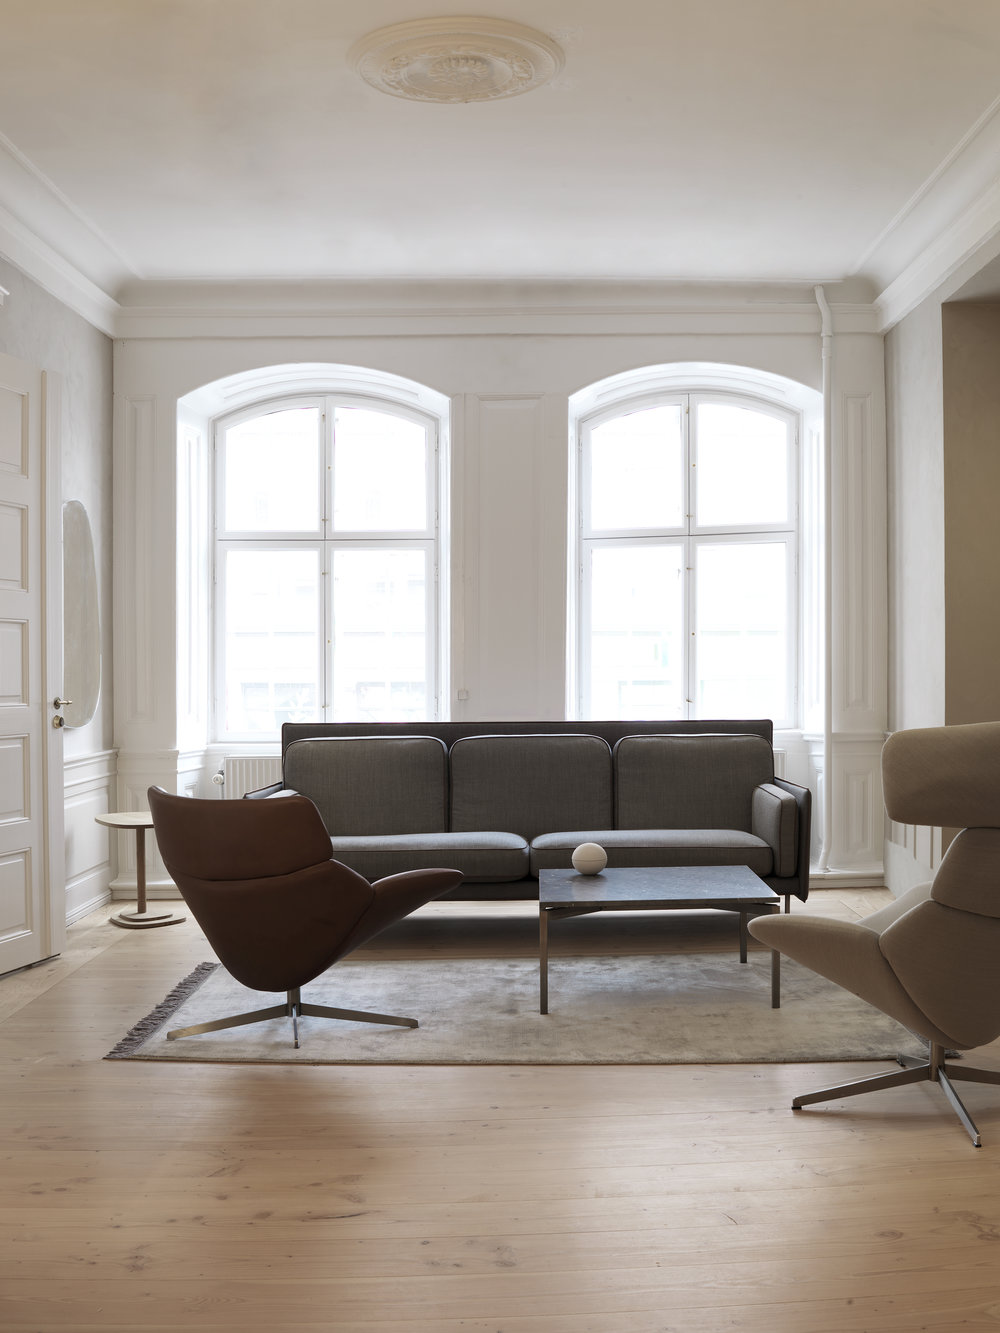 Erik Jørgensen showrrom copenhagen, interiors, scandinavian design, living room, modern furniture 2.jpg